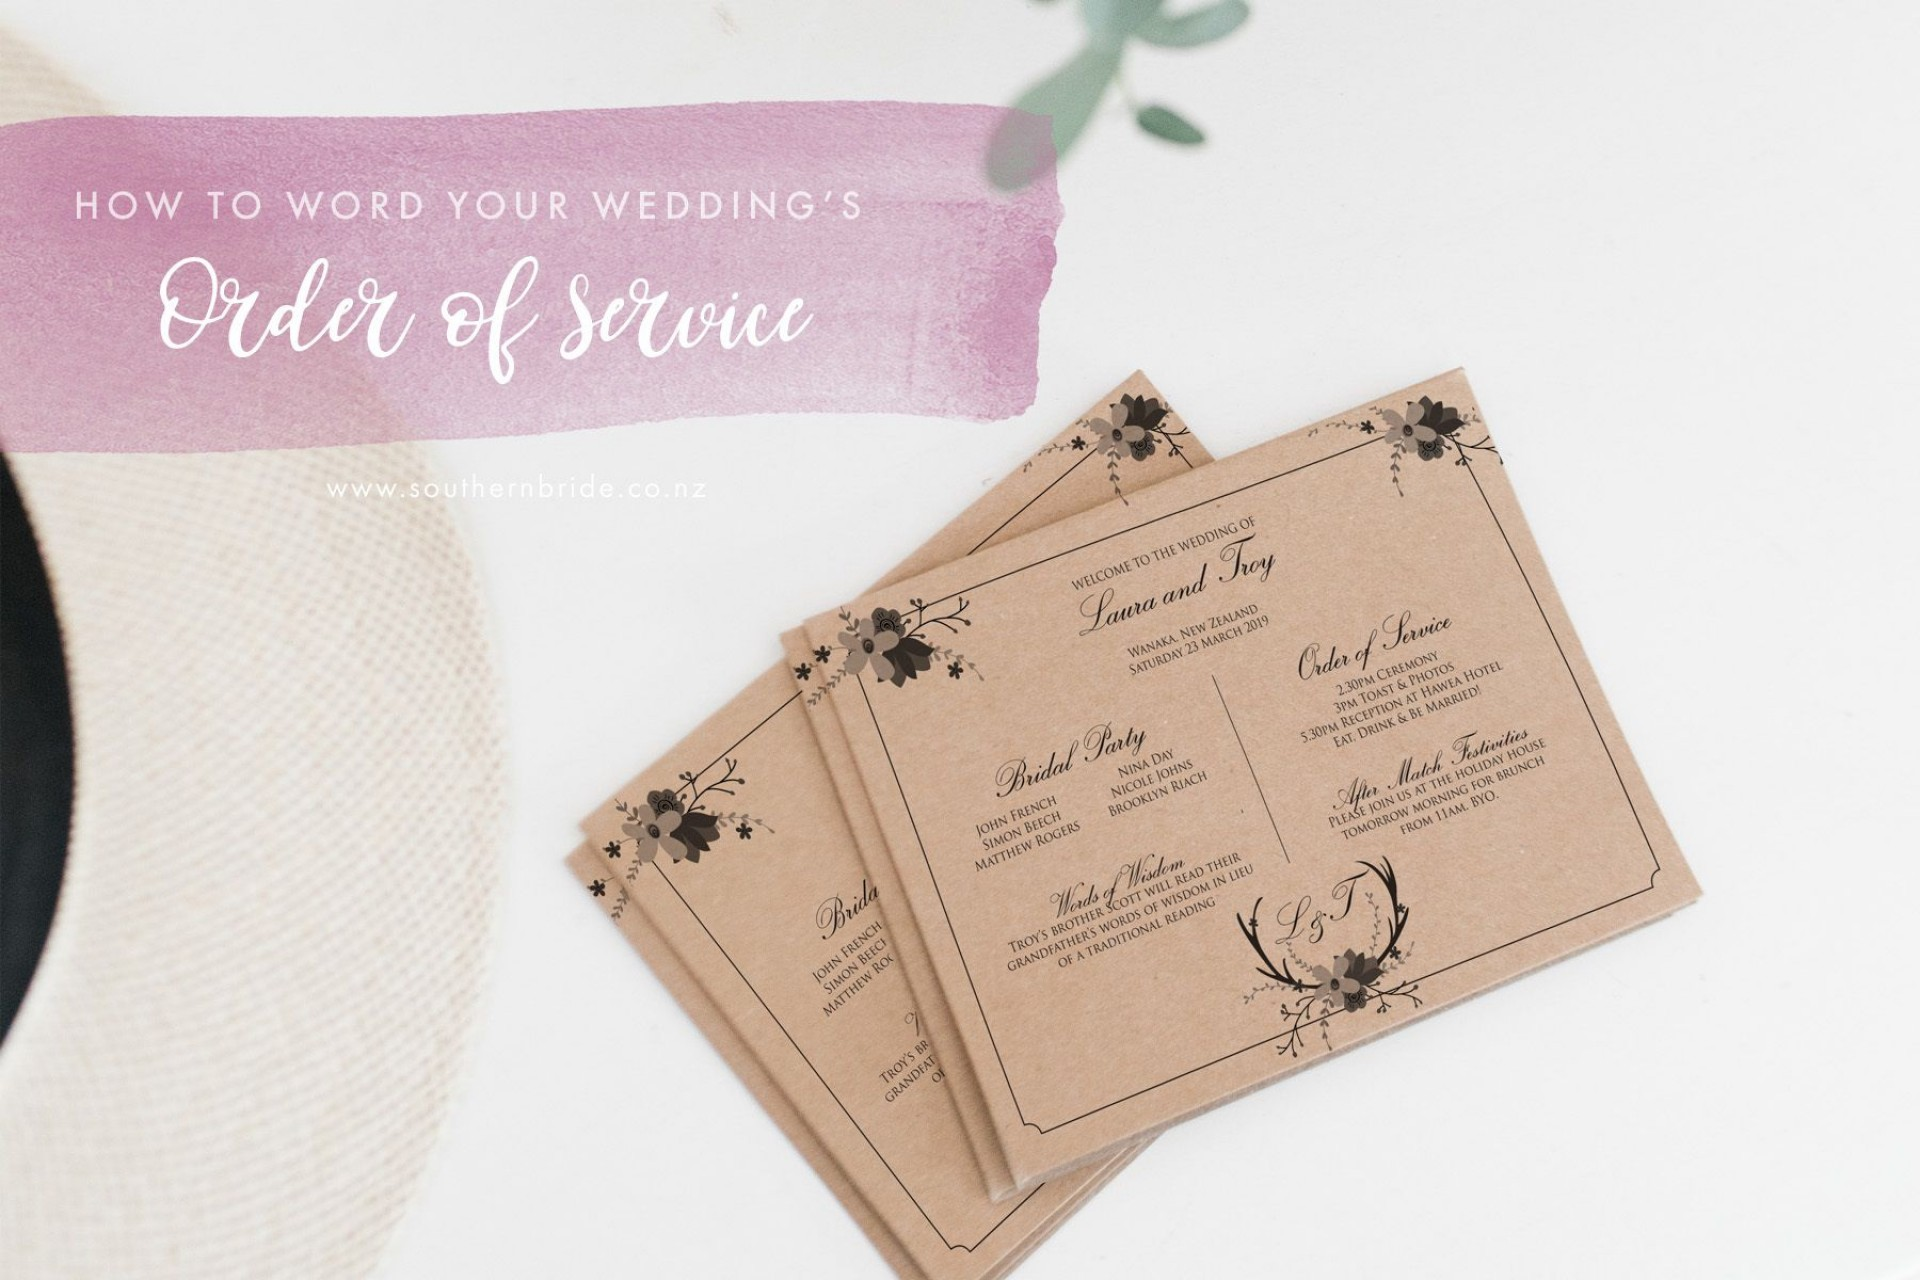 010 Stupendou Wedding Order Of Service Template Free Download Photo  Downloadable That Can Be Printed1920